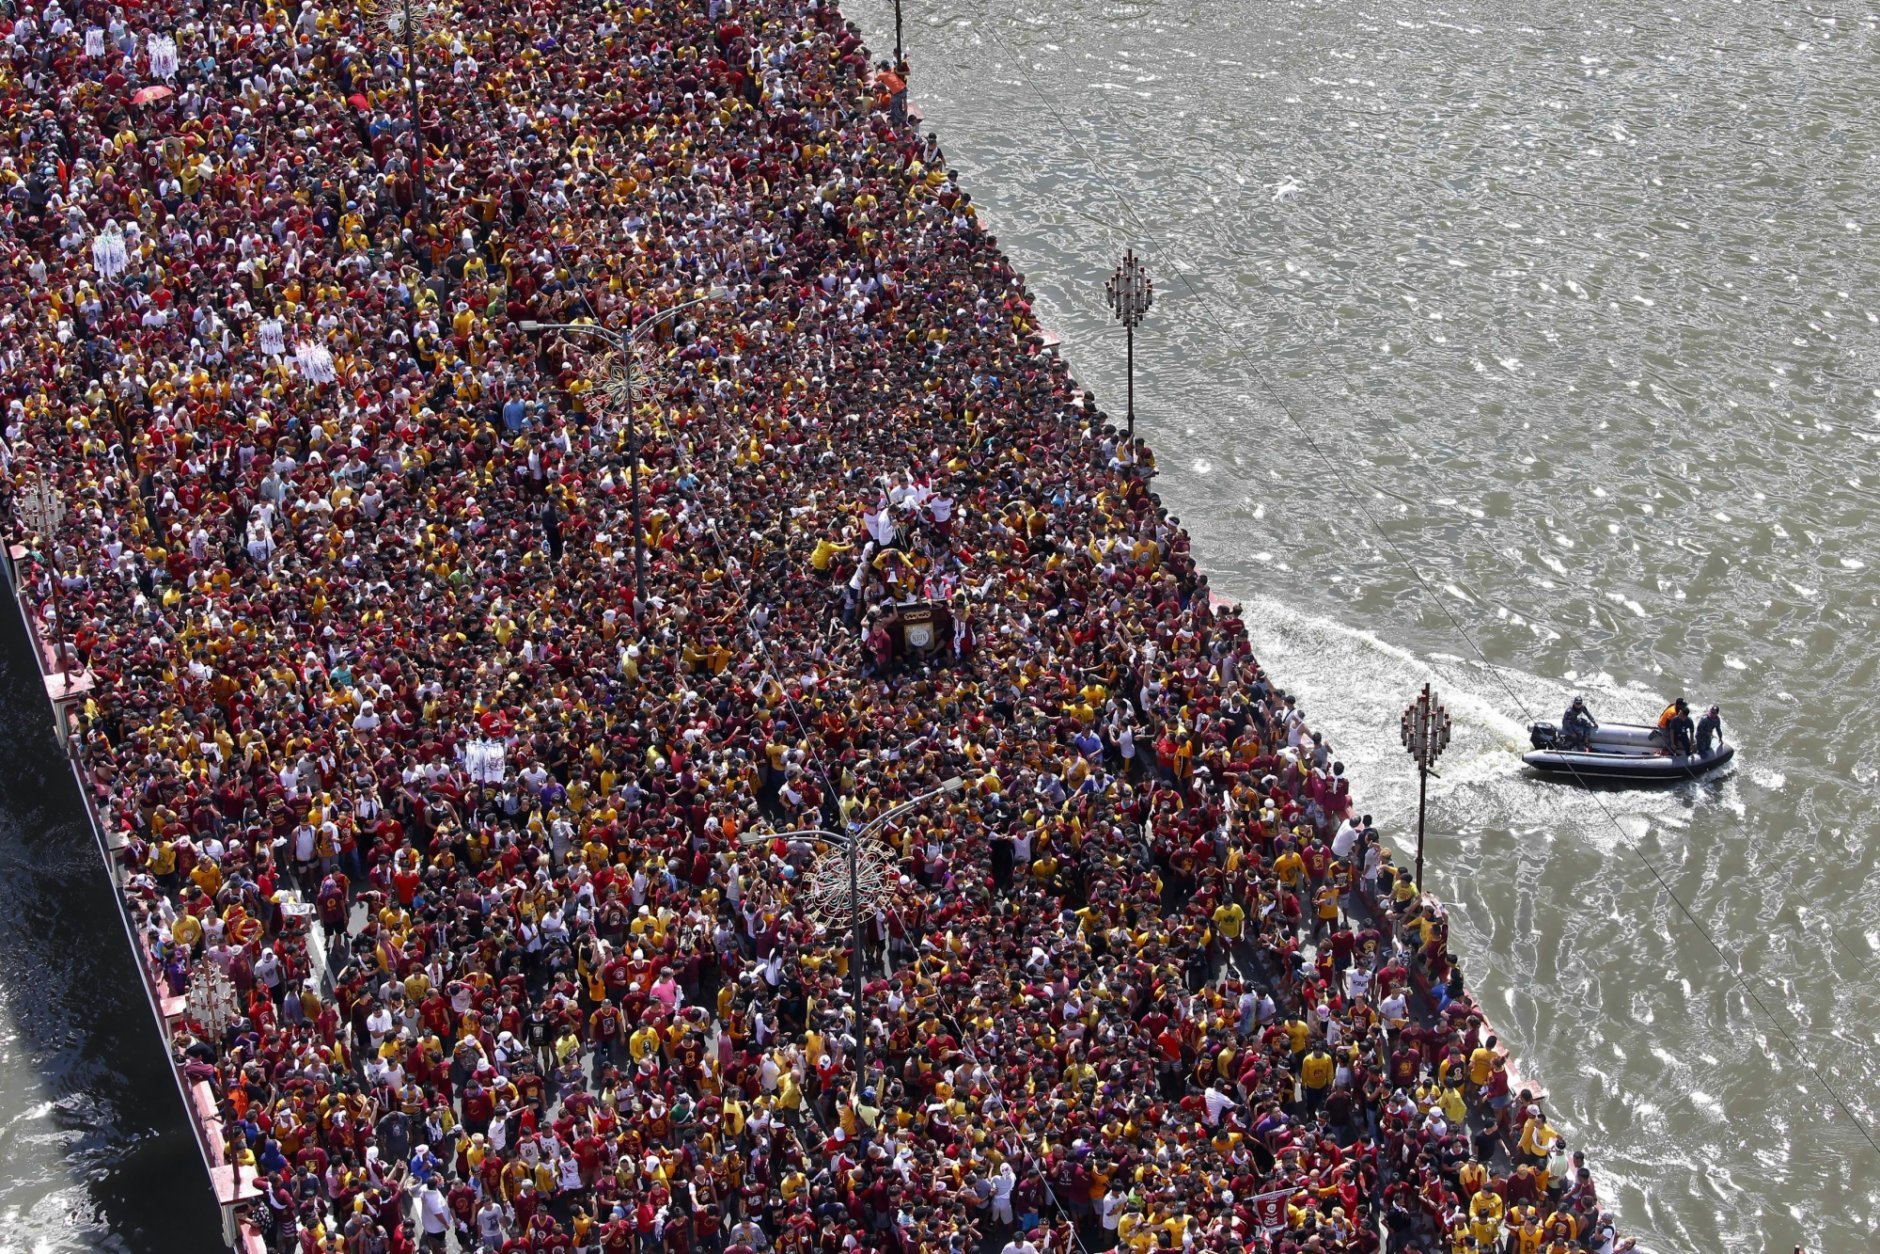 Philippine Coast Guard members keep watch as Roman Catholic devotees cross a bridge in a procession of the Black Nazarene to celebrate its feast day Wednesday, Jan. 9, 2019, in Manila, Philippines. Tens of thousands joined the annual procession of a centuries-old statue of Jesus Christ to celebrate the Feast of the Black Nazarene which usually ends before dawn the next day. (AP Photo/Bullit Marquez)